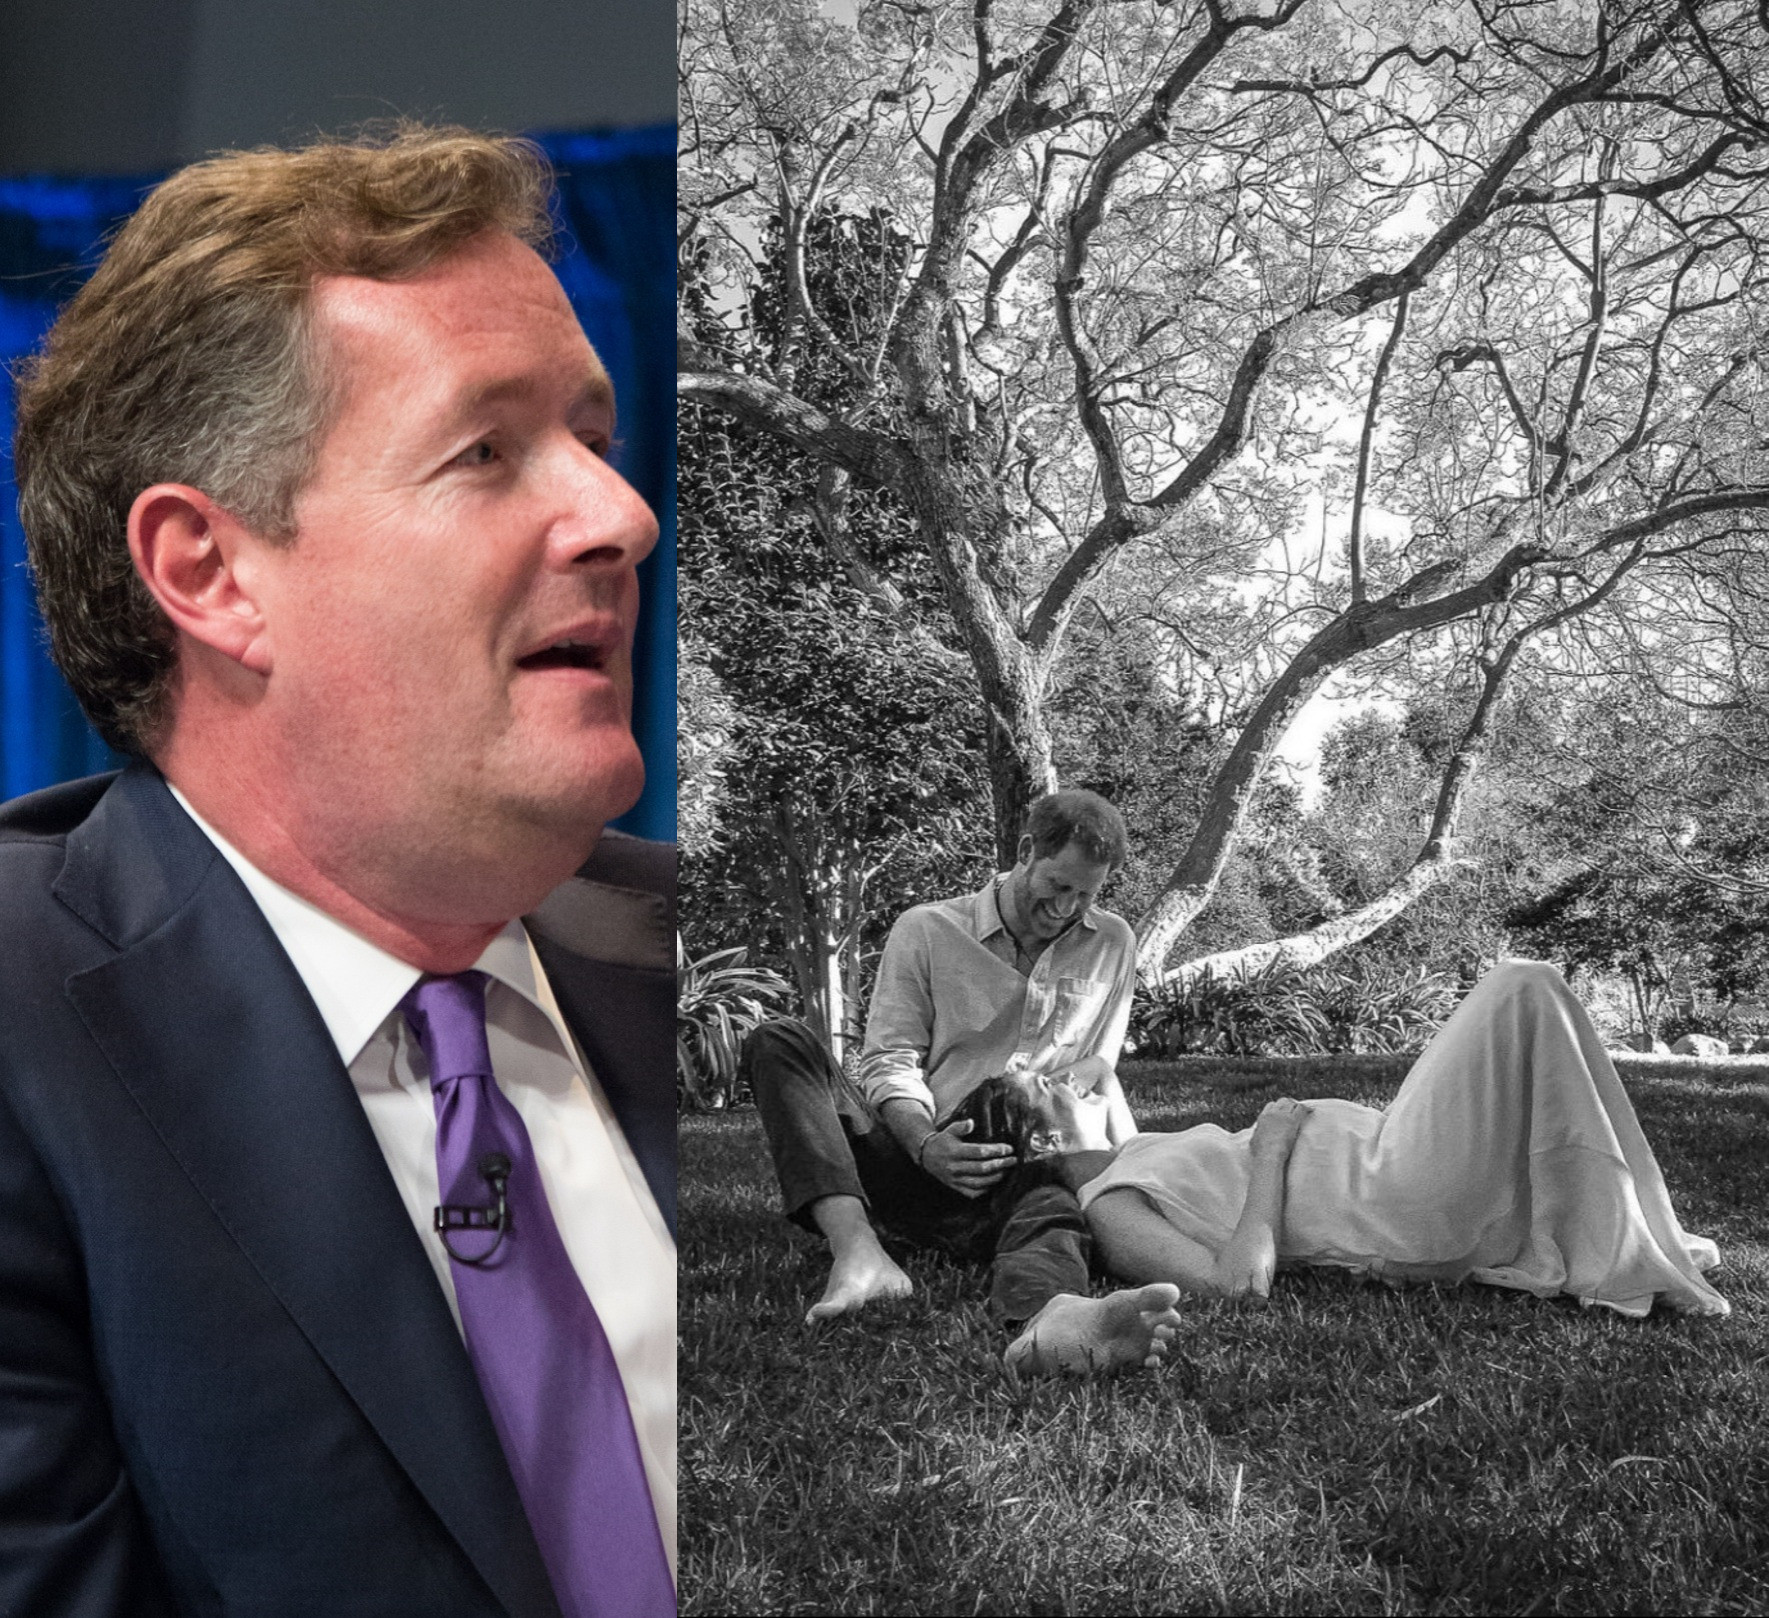 Piers Morgan slams Prince Harry and Meghan Markle for making a public baby announcement despite claiming they want privacy